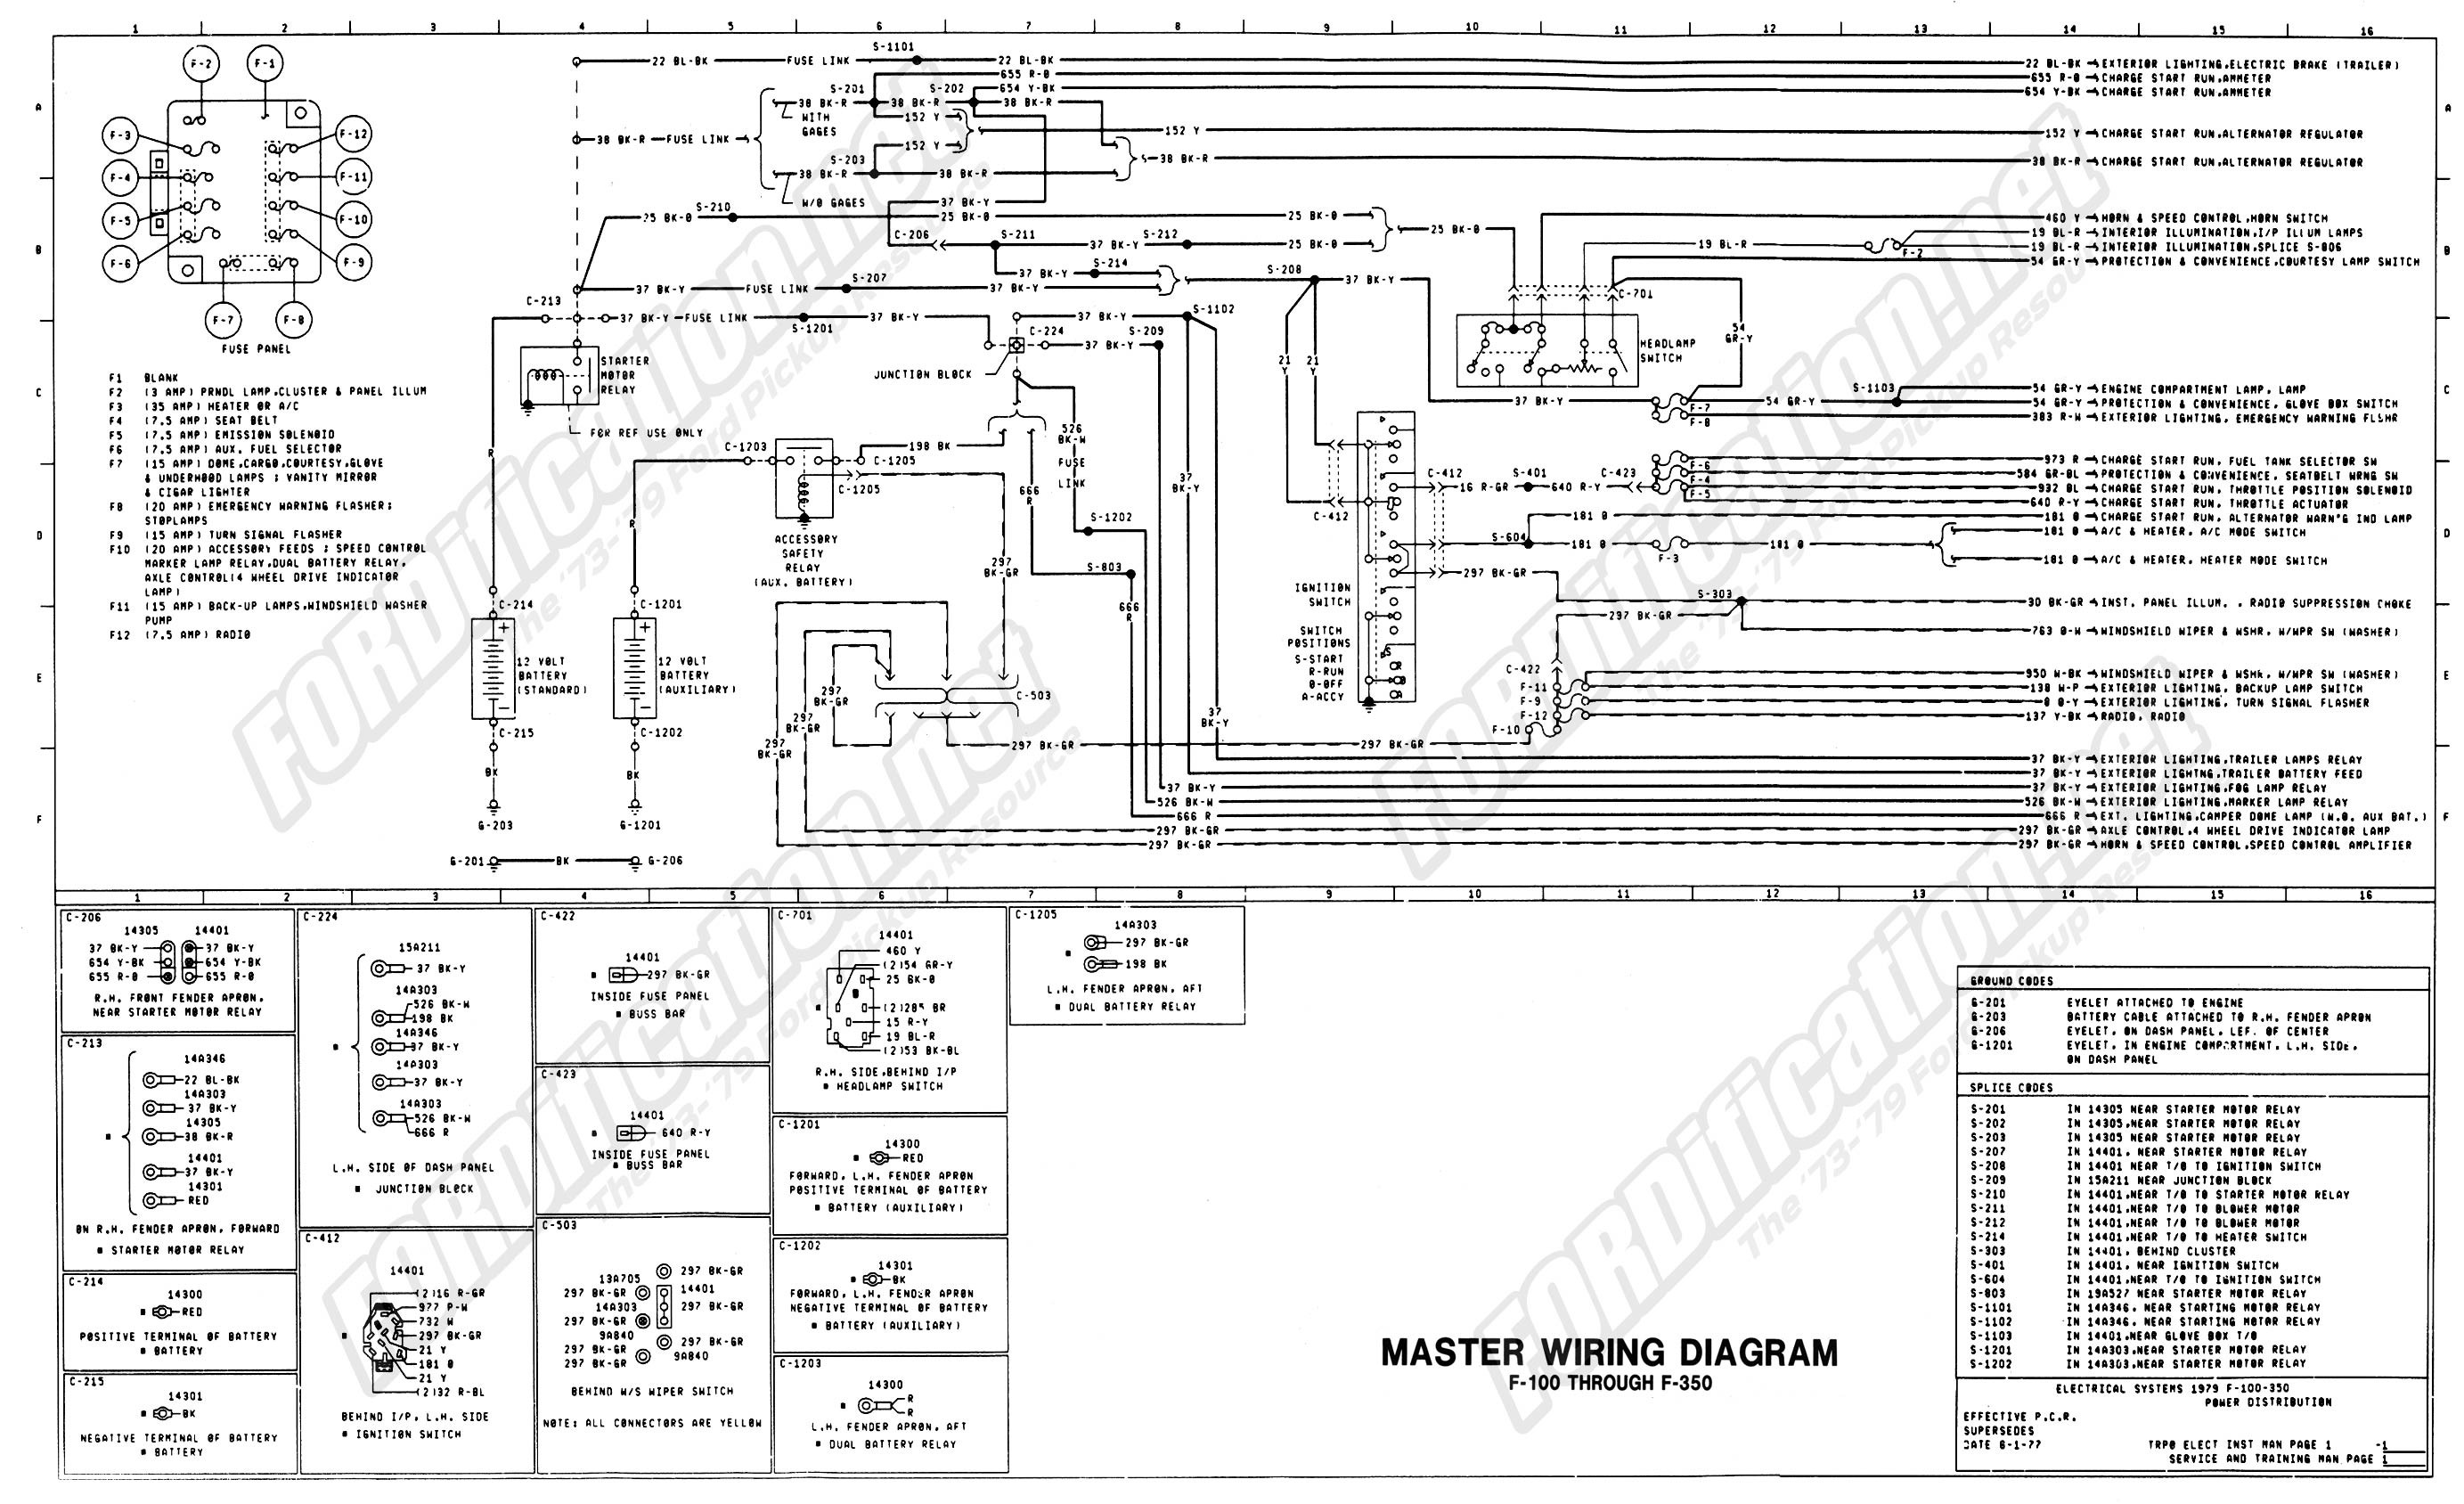 2008 F350 Tail Light Wiring Diagram 1973 1979 ford Truck Wiring Diagrams & Schematics Of 2008 F350 Tail Light Wiring Diagram